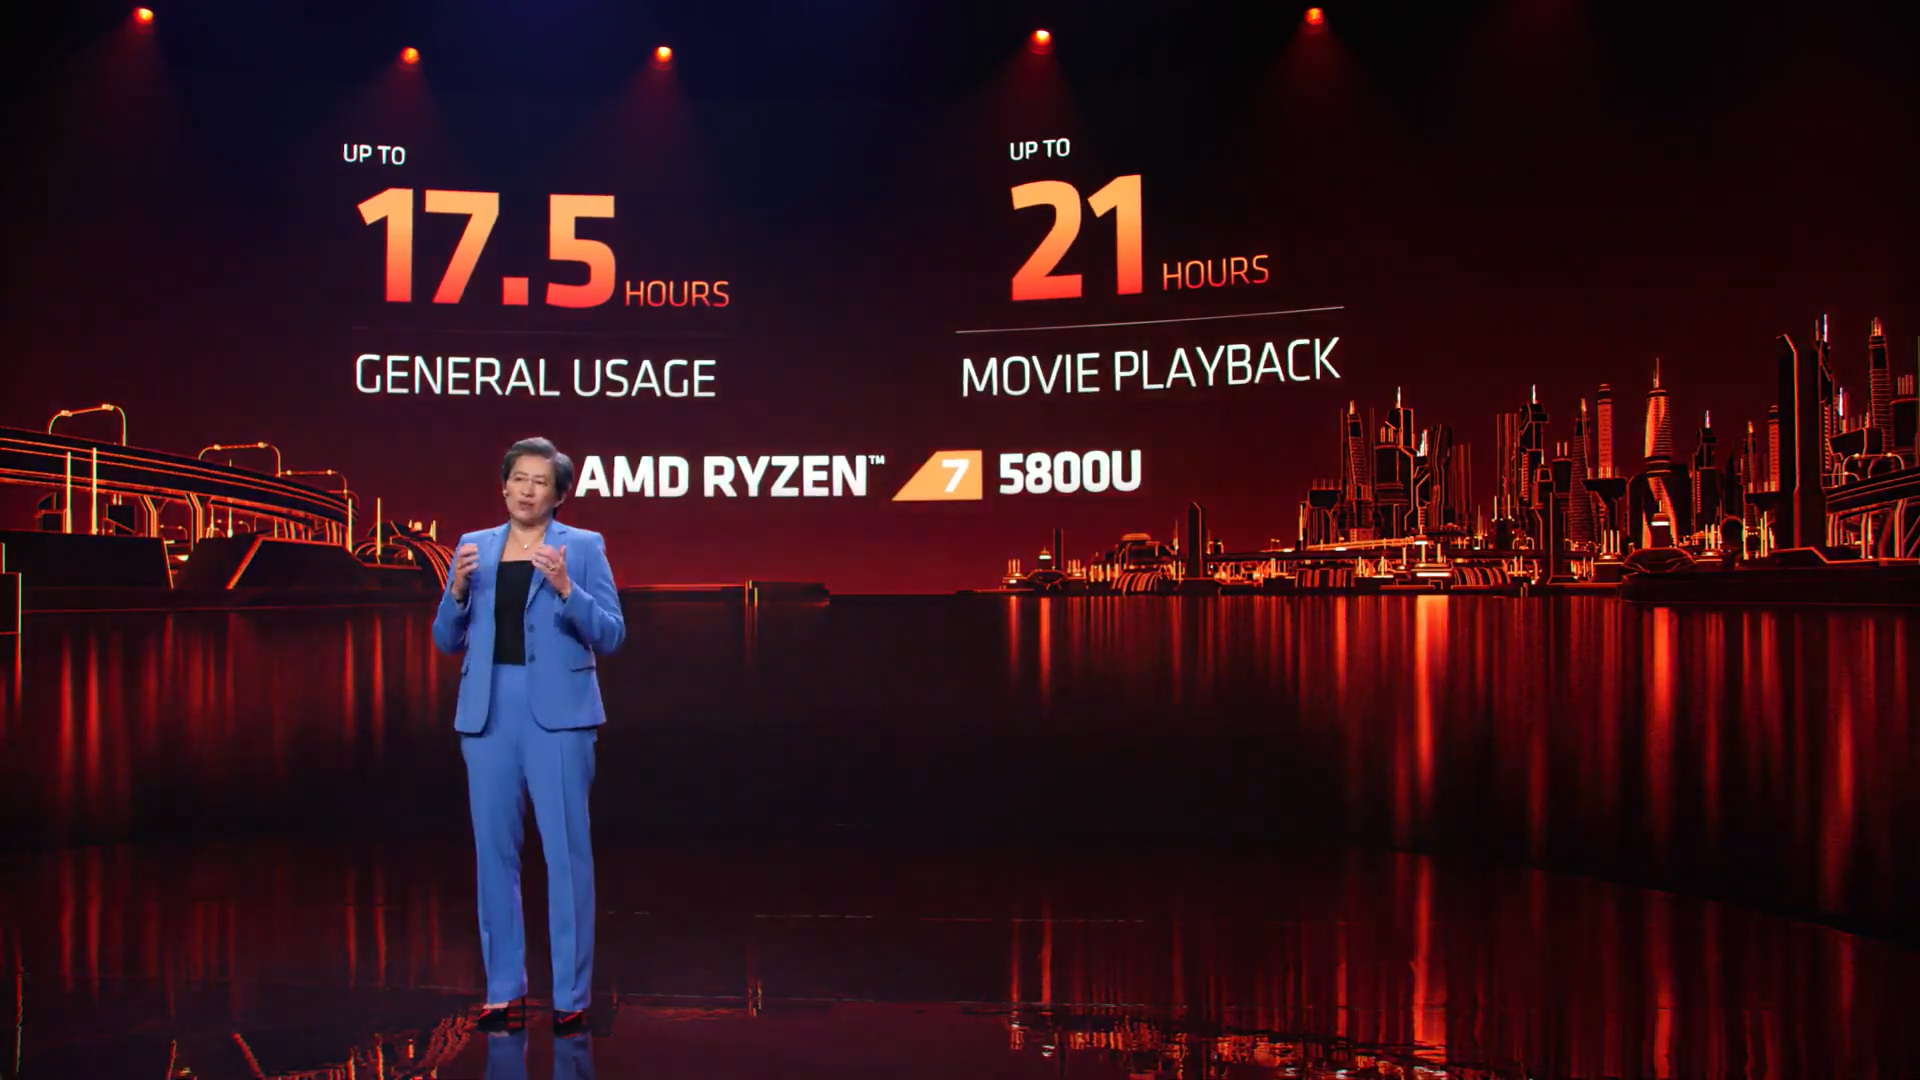 64-amd-at-ces-2021-youtube-opera-12_01_2021-11_23_22-pm-jpg.12557